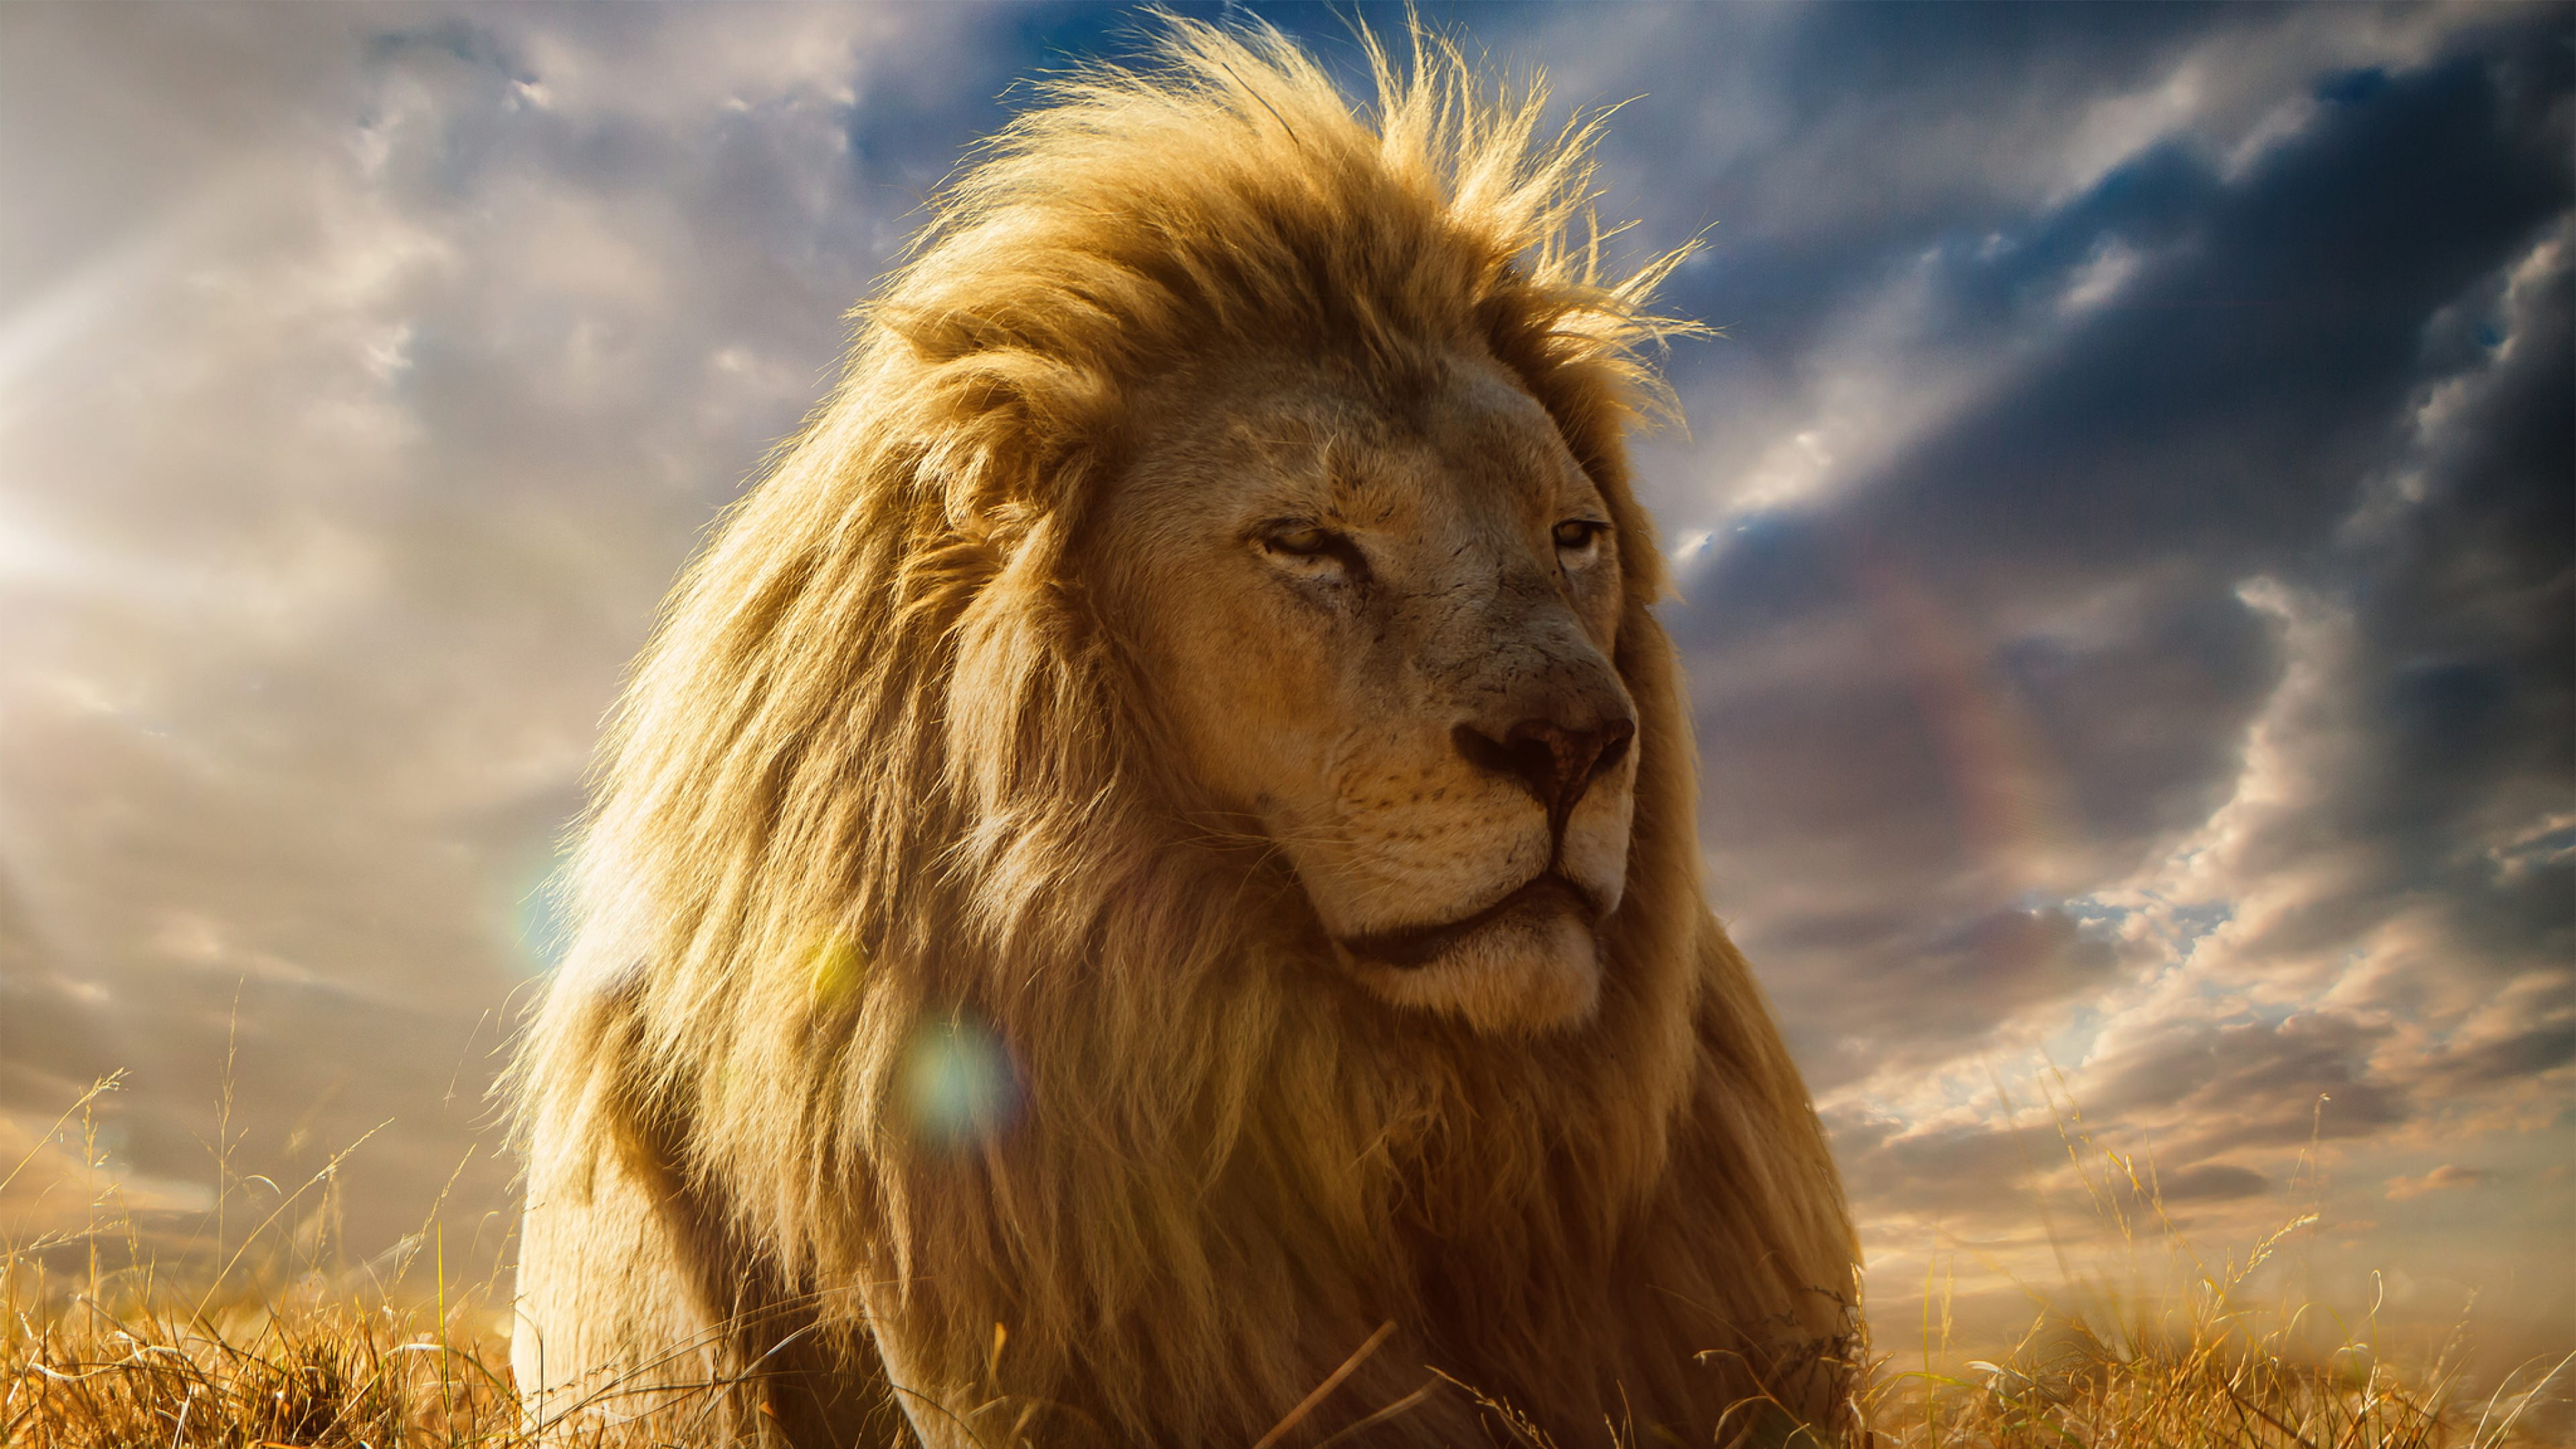 21 Lion Wallpapers Backgrounds Images Freecreatives